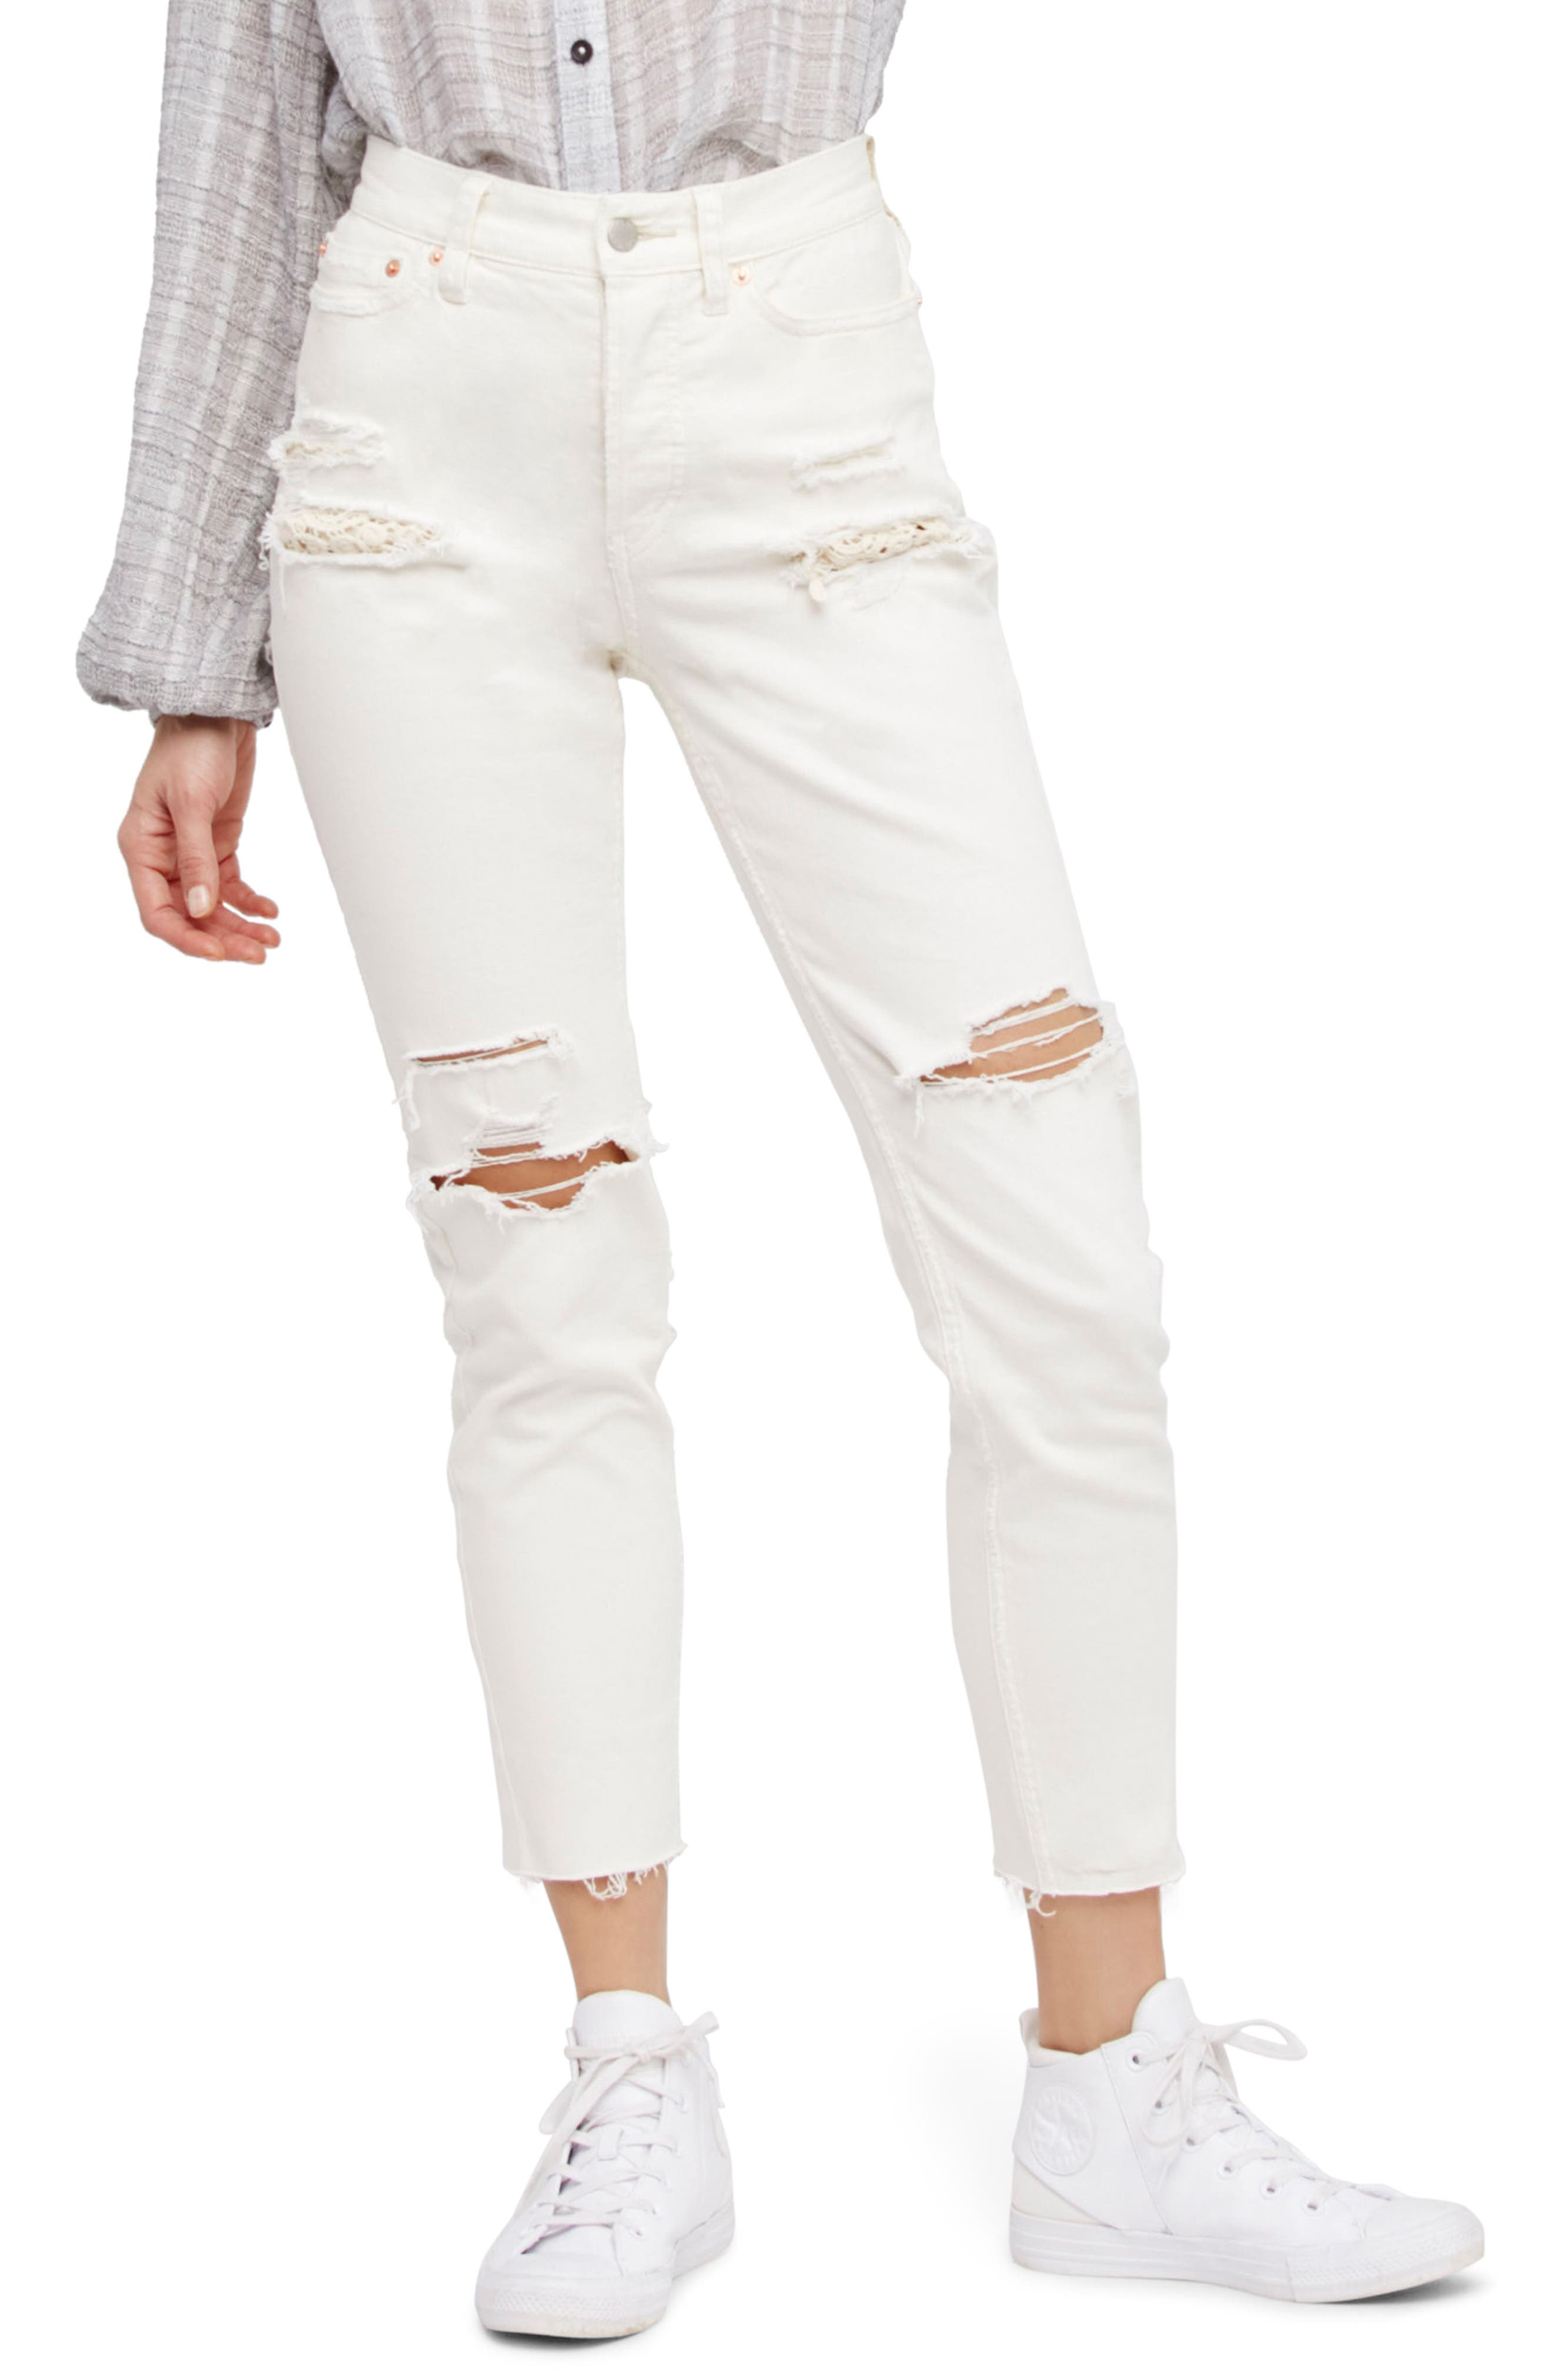 Free People Lacey Stilt Embellished Skinny Jeans